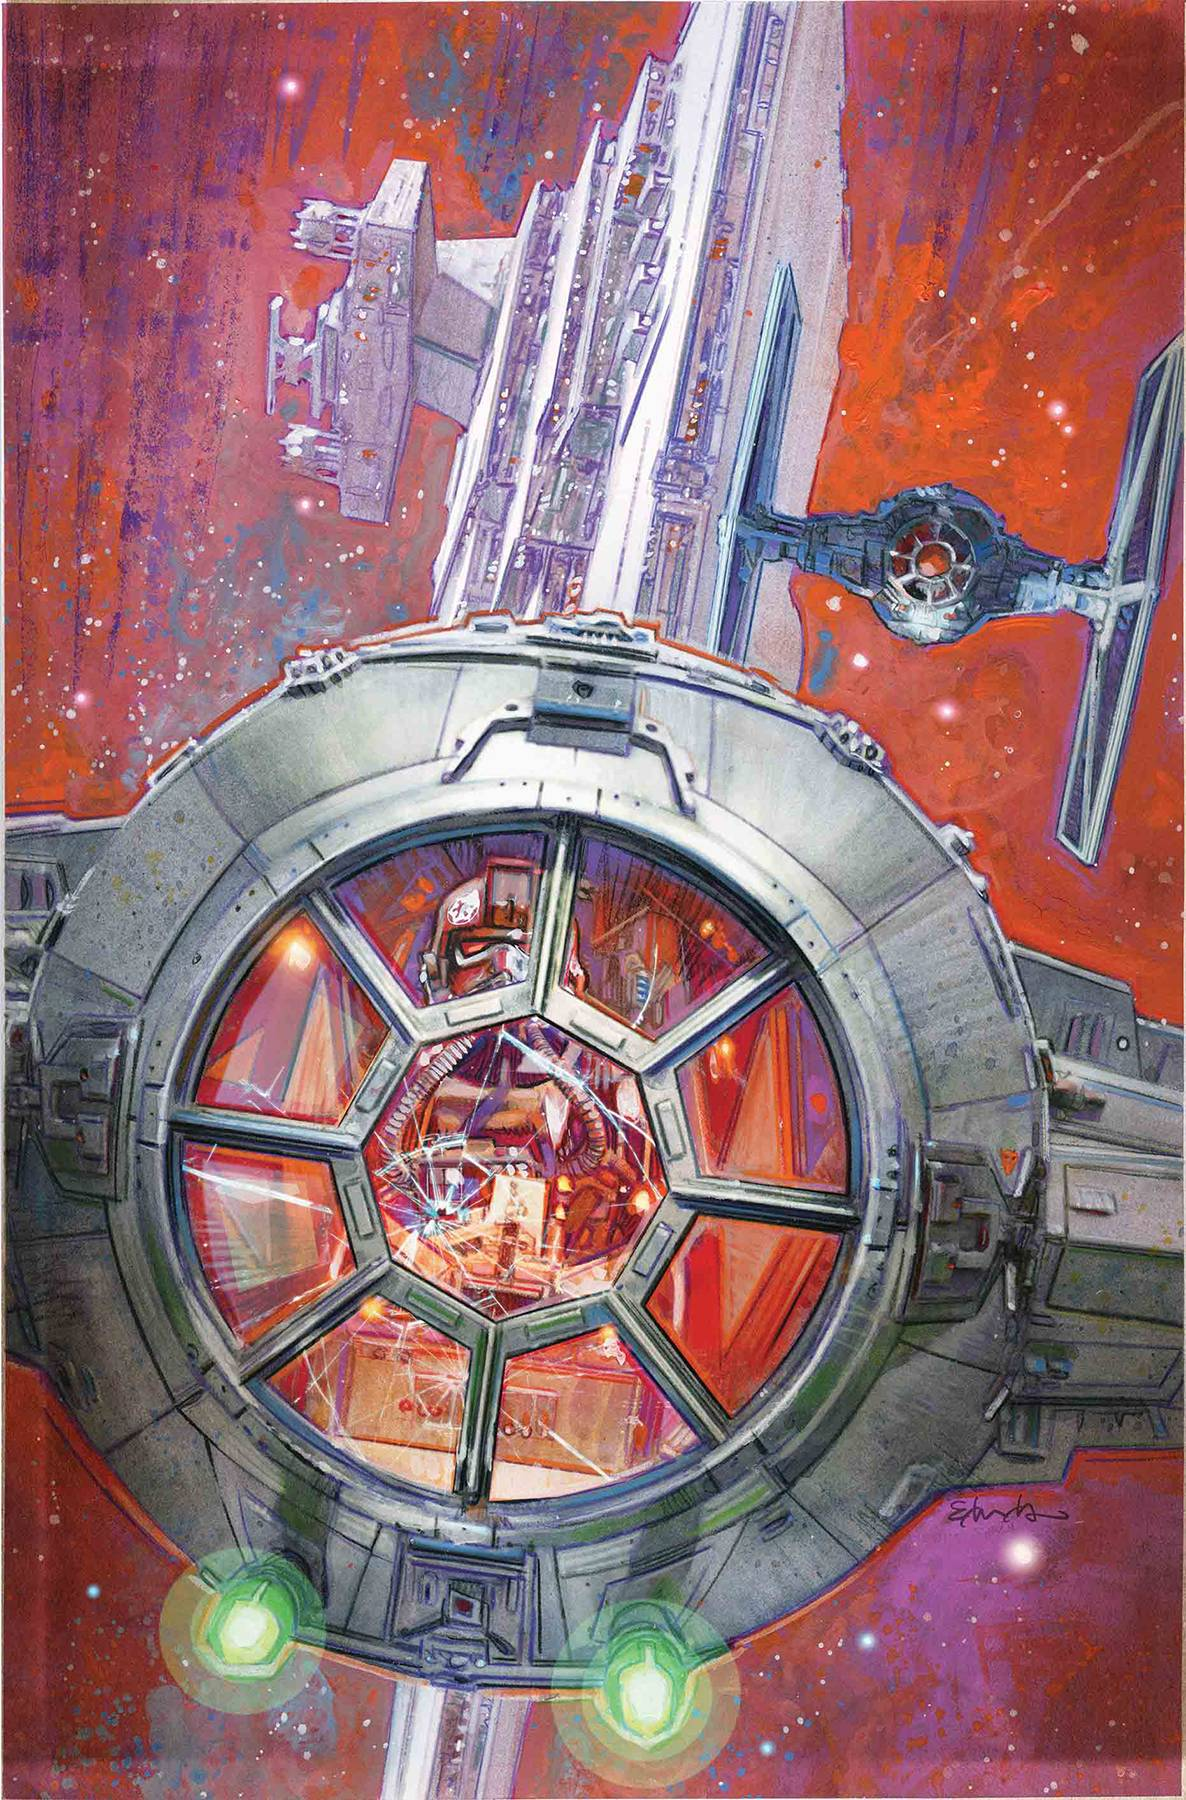 STAR WARS TIE FIGHTER 3 of 5.jpg